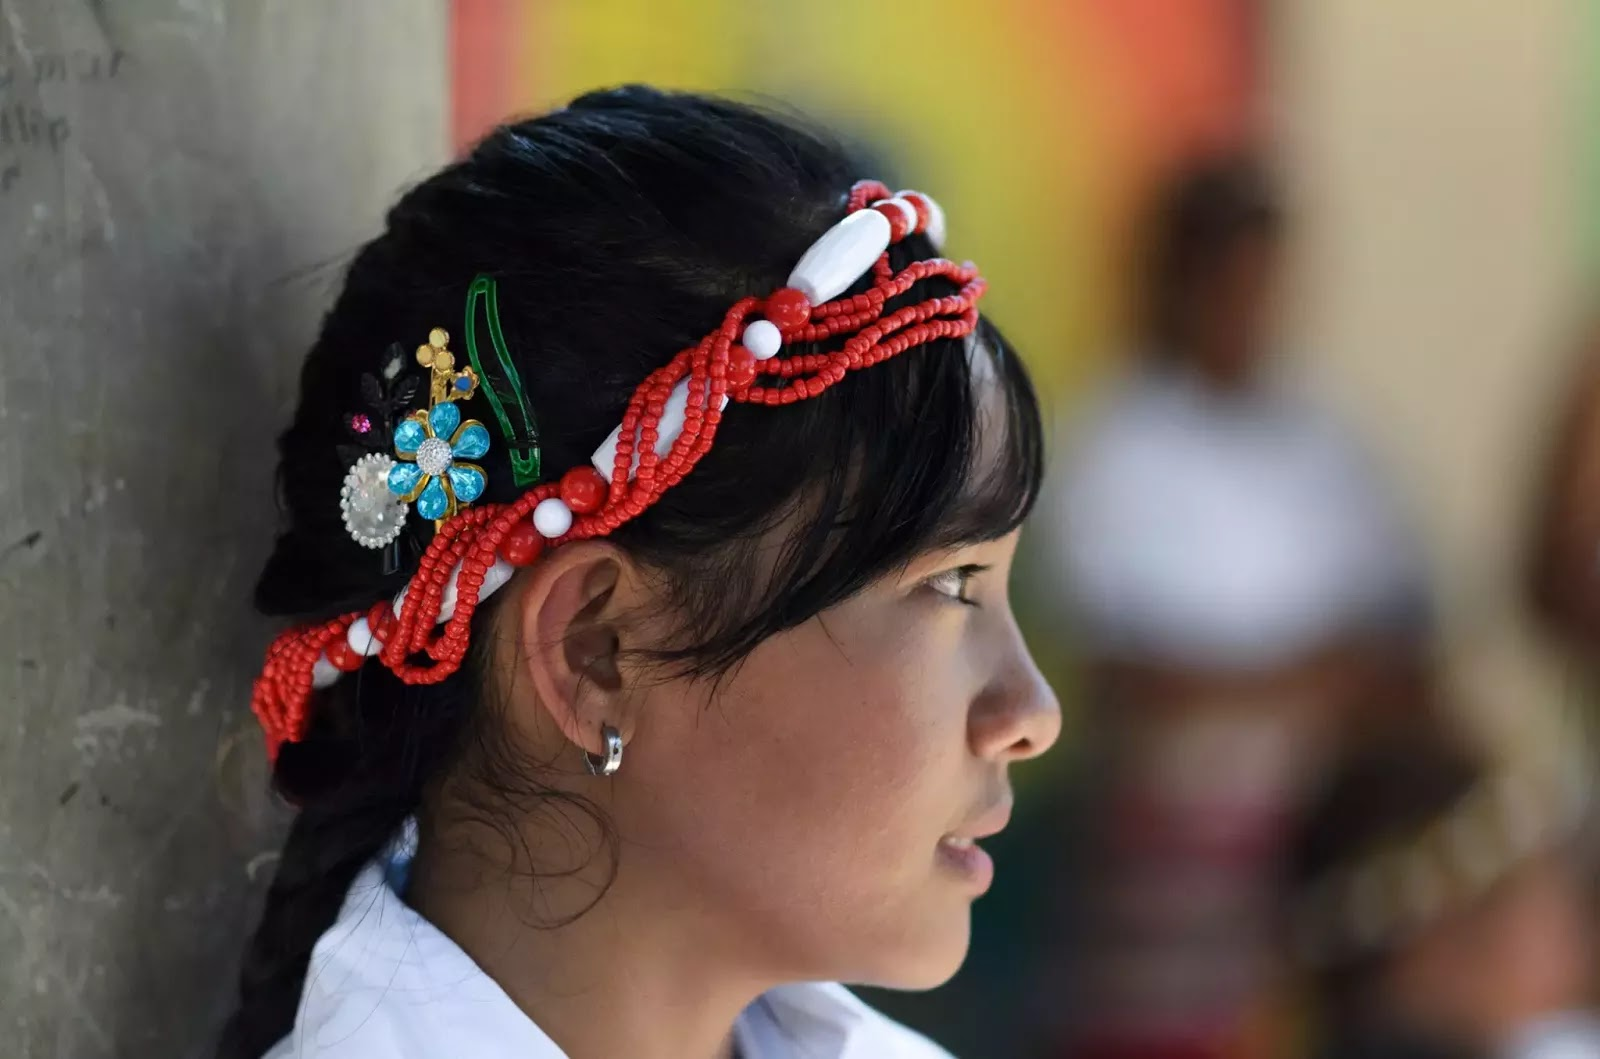 Mountain Province Ethno Indigenous Youth Headgear Portrait